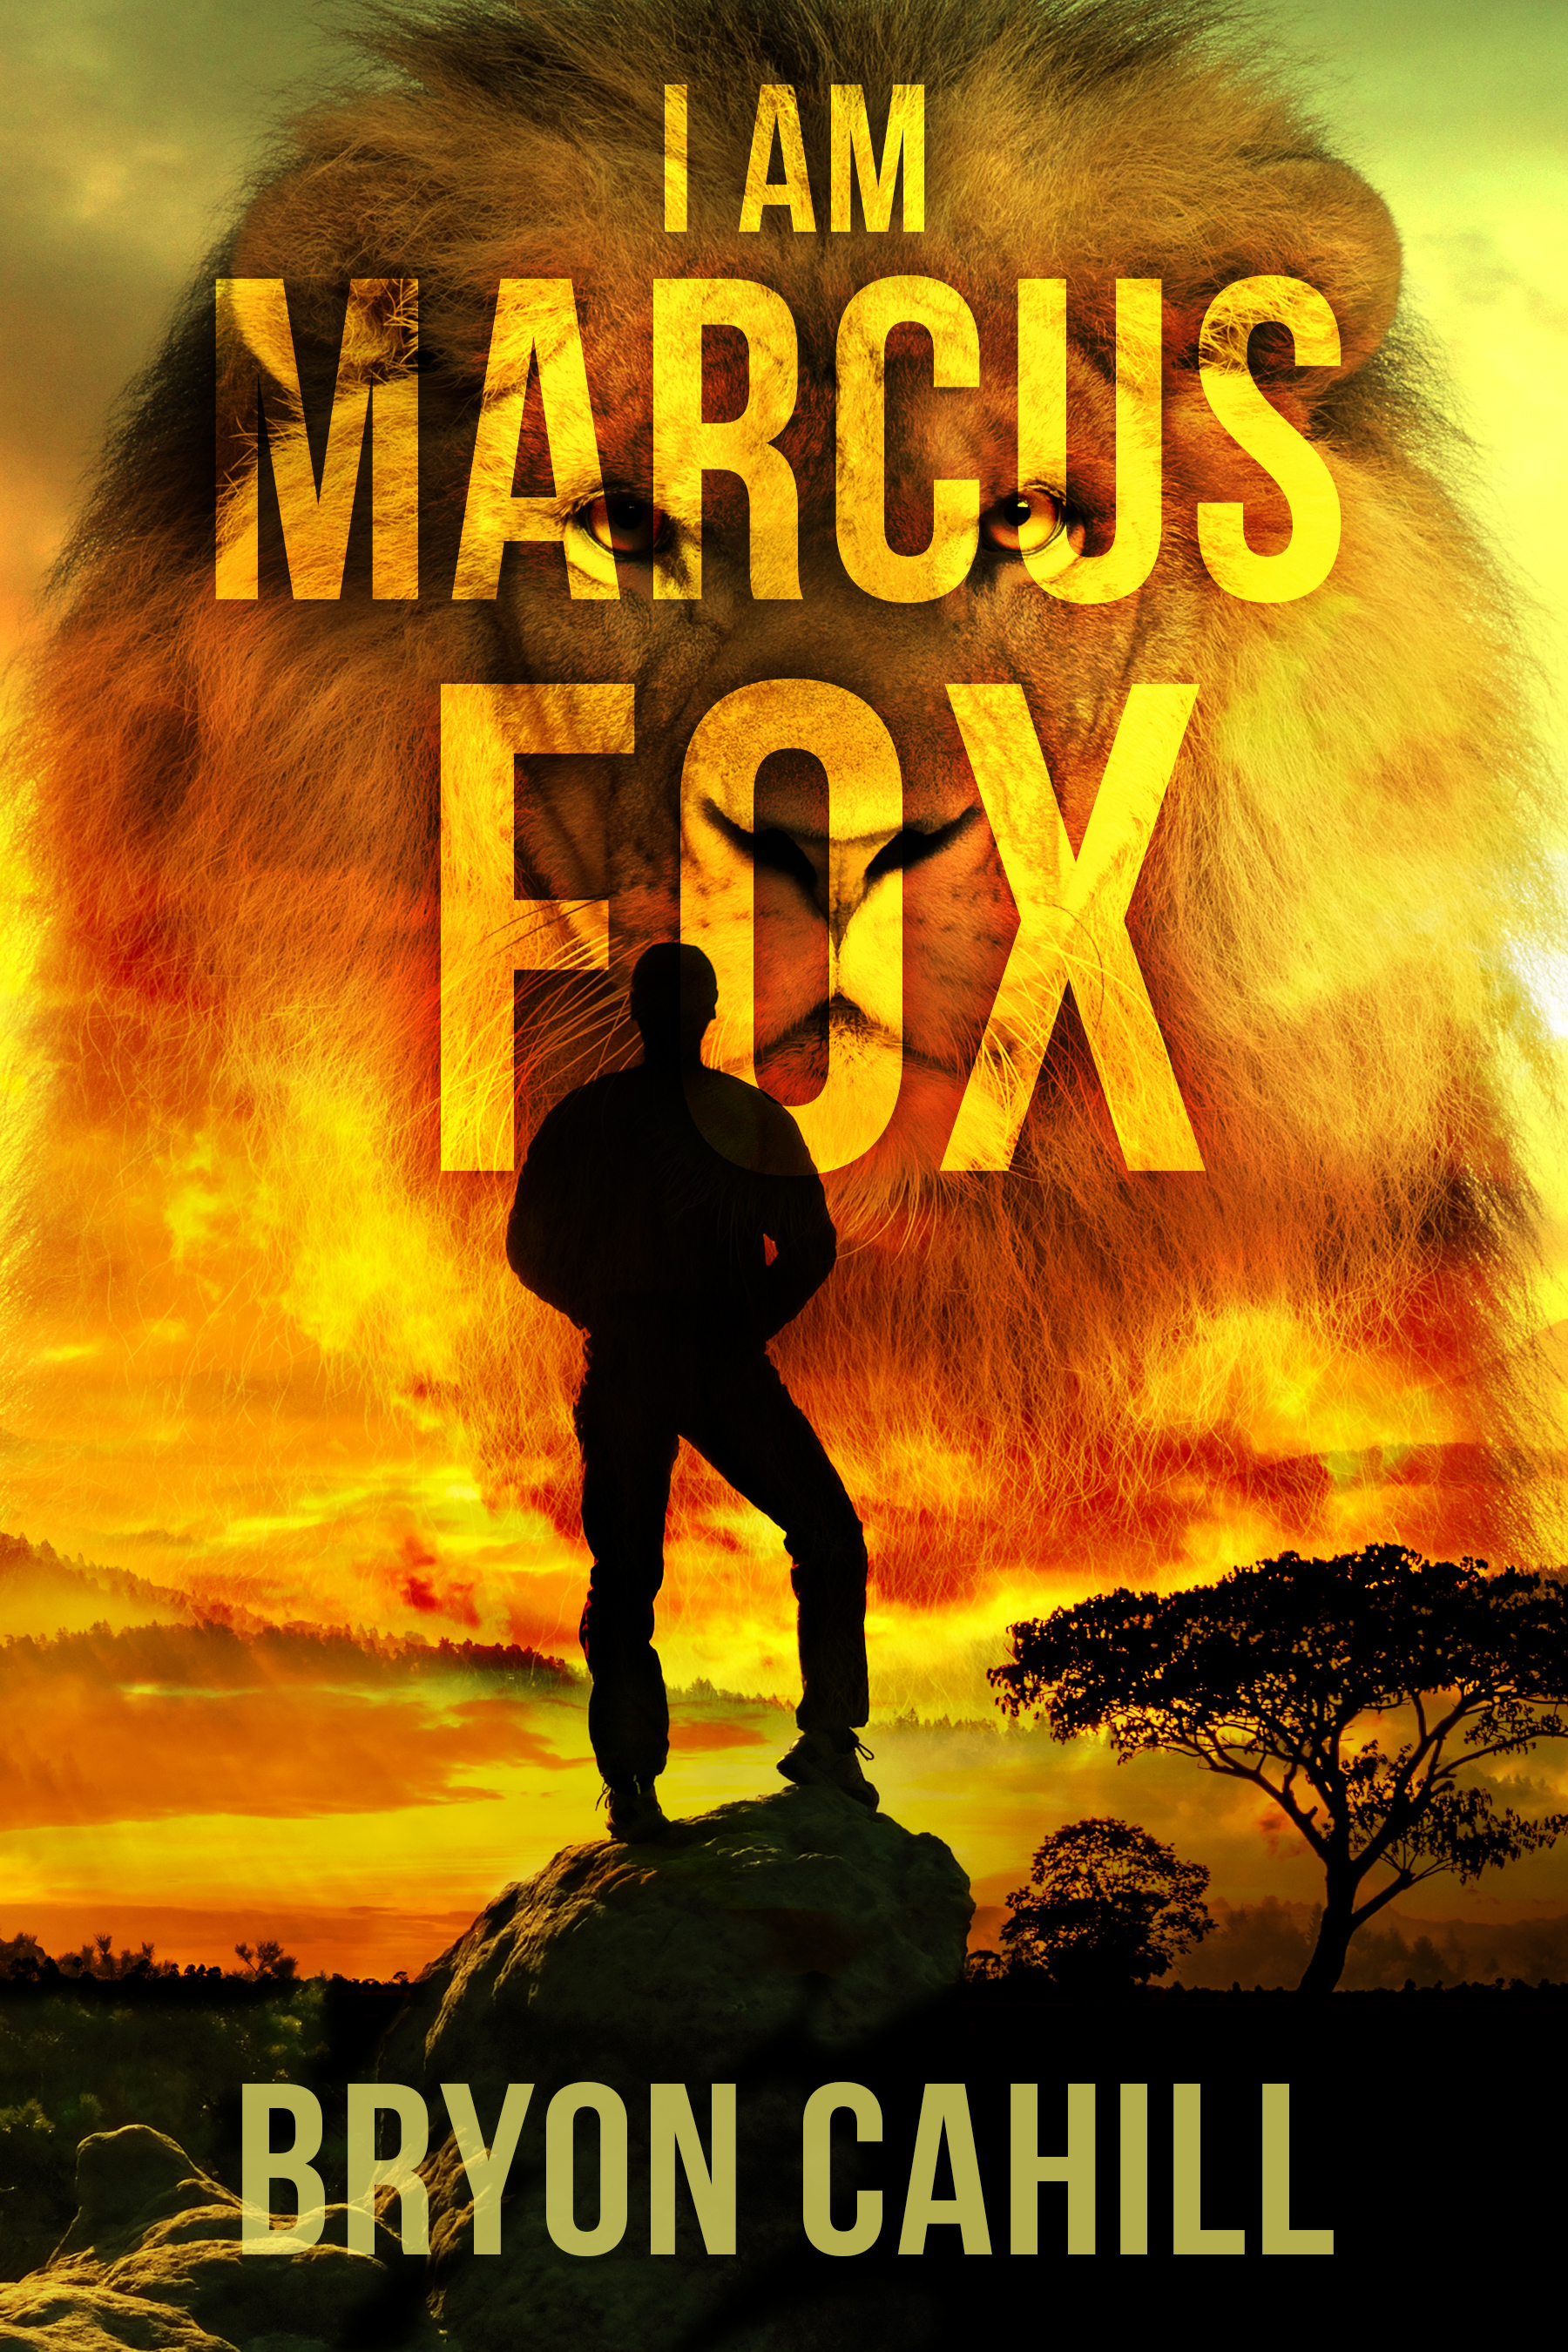 When I was six, my Momma tossed me out of a low-flying plane.I'd be lying if I said I didn't deserve it. - Wrenched from dust-choked, Texas ghost towns and discarded in a lush Zambian forest, Marcus Fox became a welcome member of the fearless tribe that saved him. With the help and guidance of his new people, he learned how to fight for survival, hunt for his supper, and repress the scars of his abandonment. As he grew to premature manhood, familial betrayal came calling once more, leaving him broken and alone, yet again.With the past never behind him, he'll venture down a twisty, bone-scattered road in search of the infernal woman who started him on his tortured path. Perhaps she has some passable answer to his one pressing question:Who is Marcus Fox?